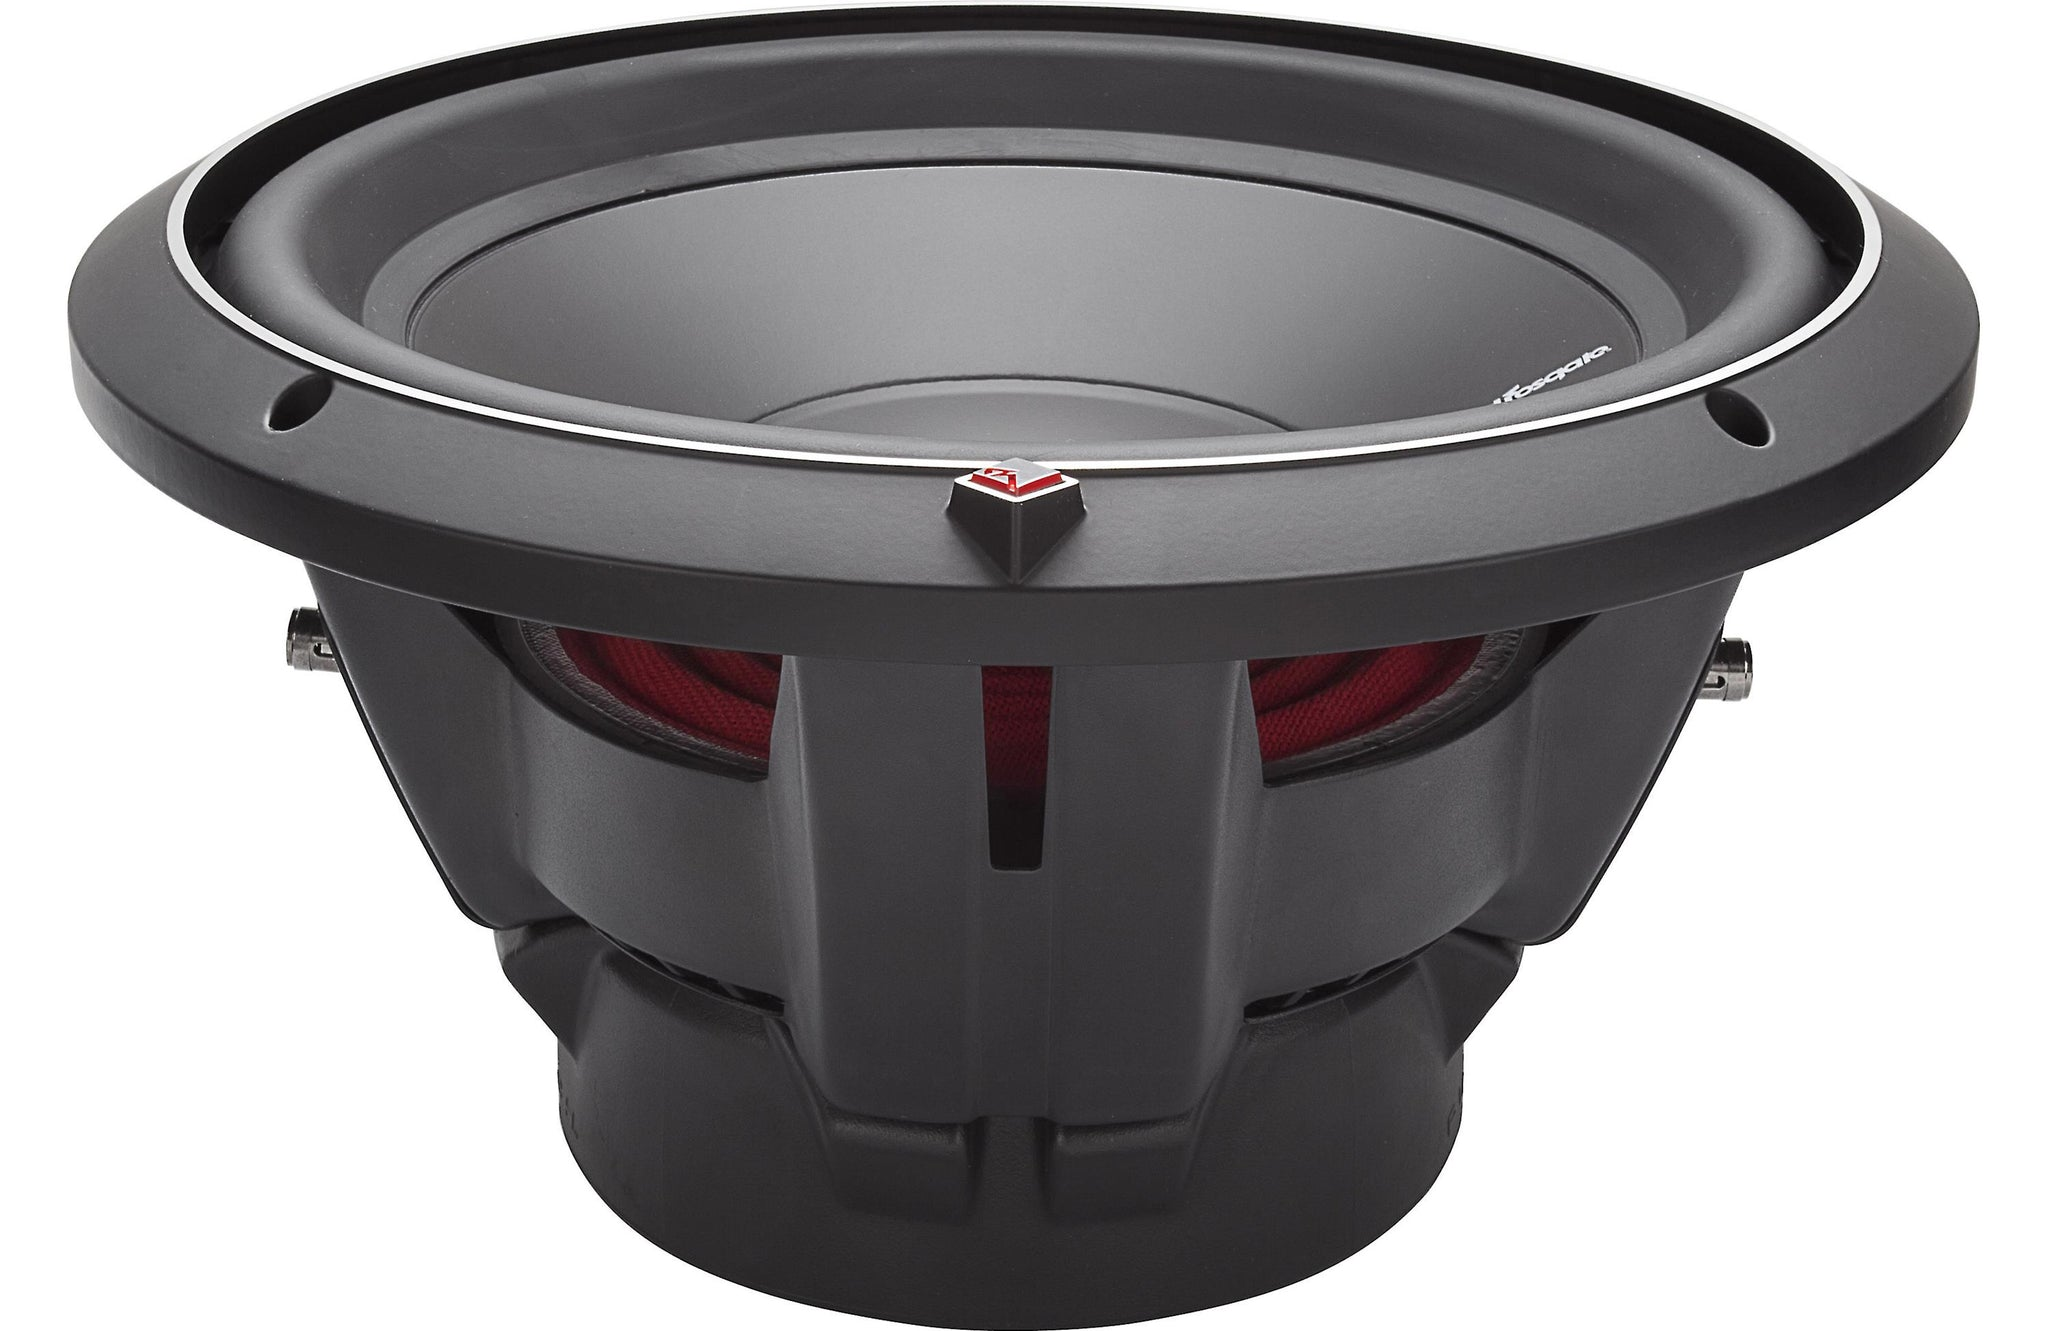 "Rockford Fosgate P2D4-15 Punch P2 15"" subwoofer with dual 4-ohm voice coils"